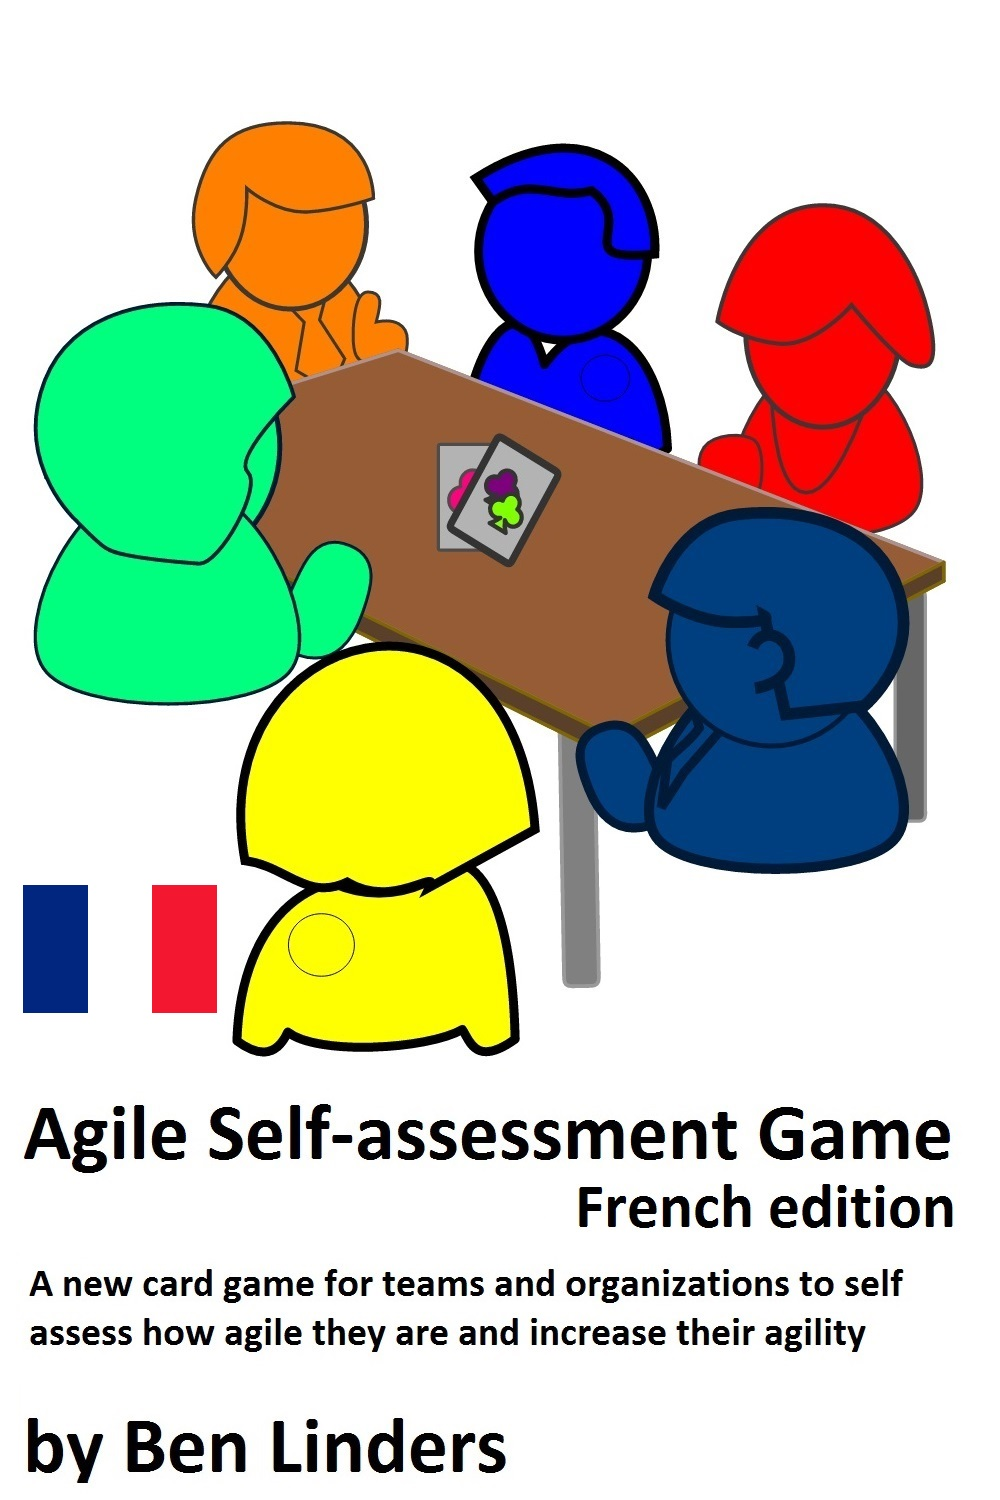 Agile Self-assessment Game – French edition